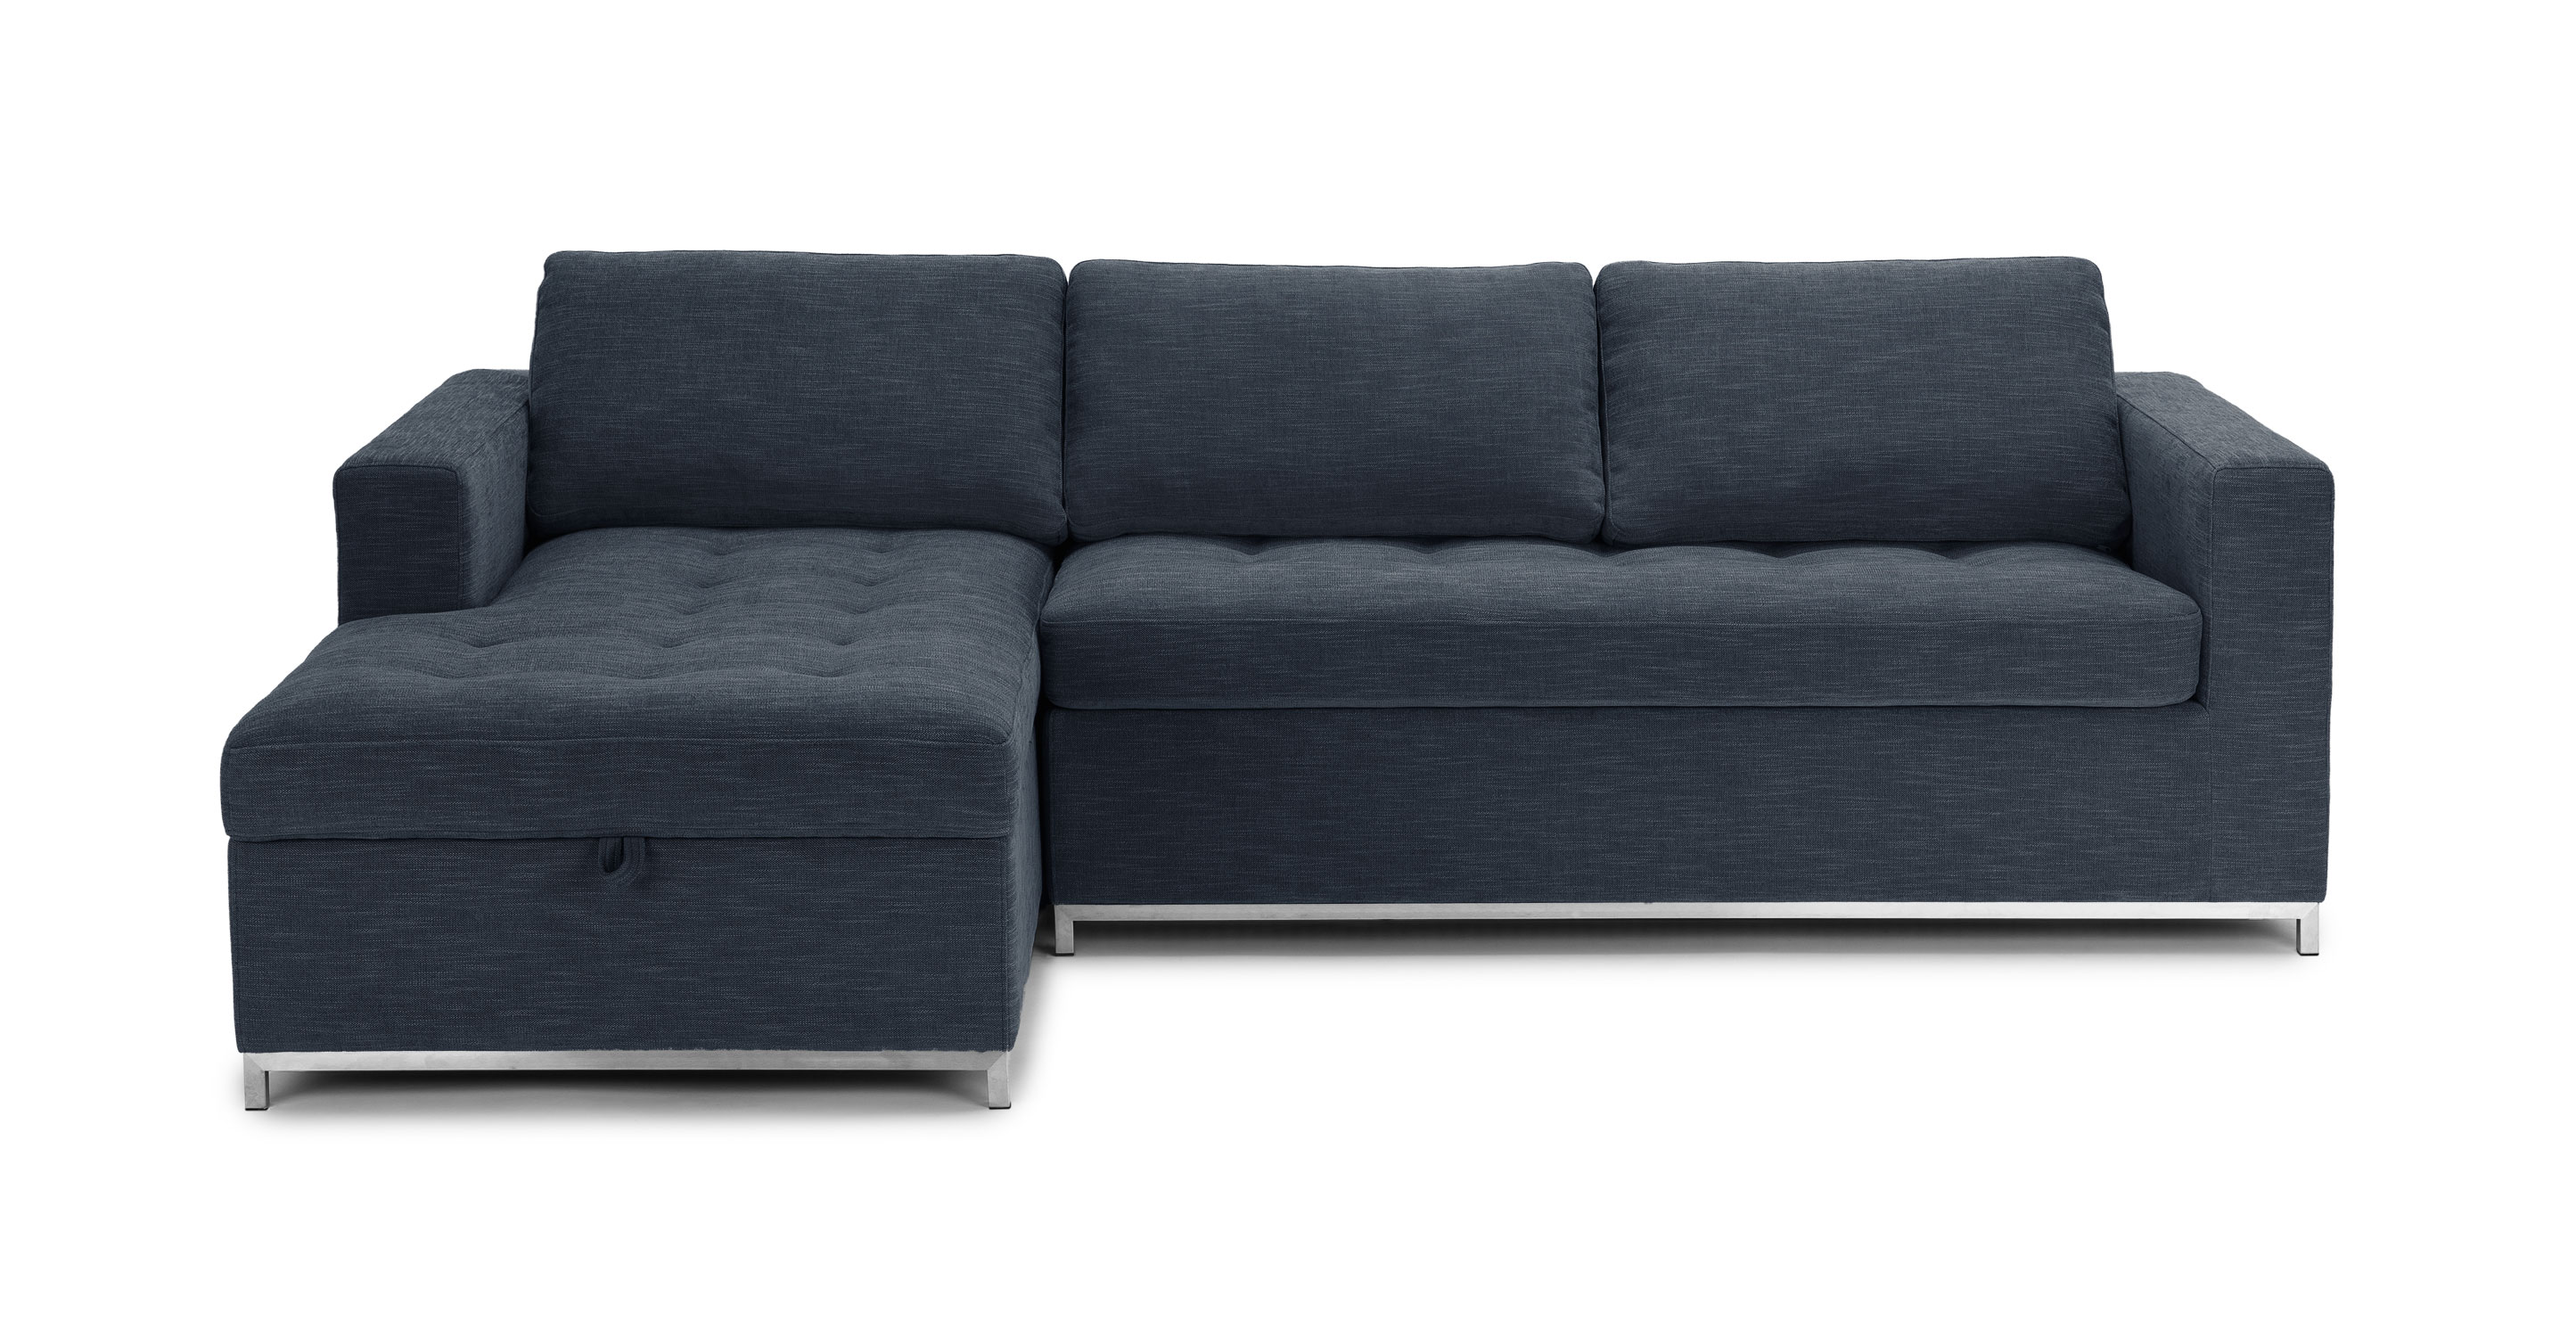 overnight sofa retailers fix bed frame soma midnight blue left article